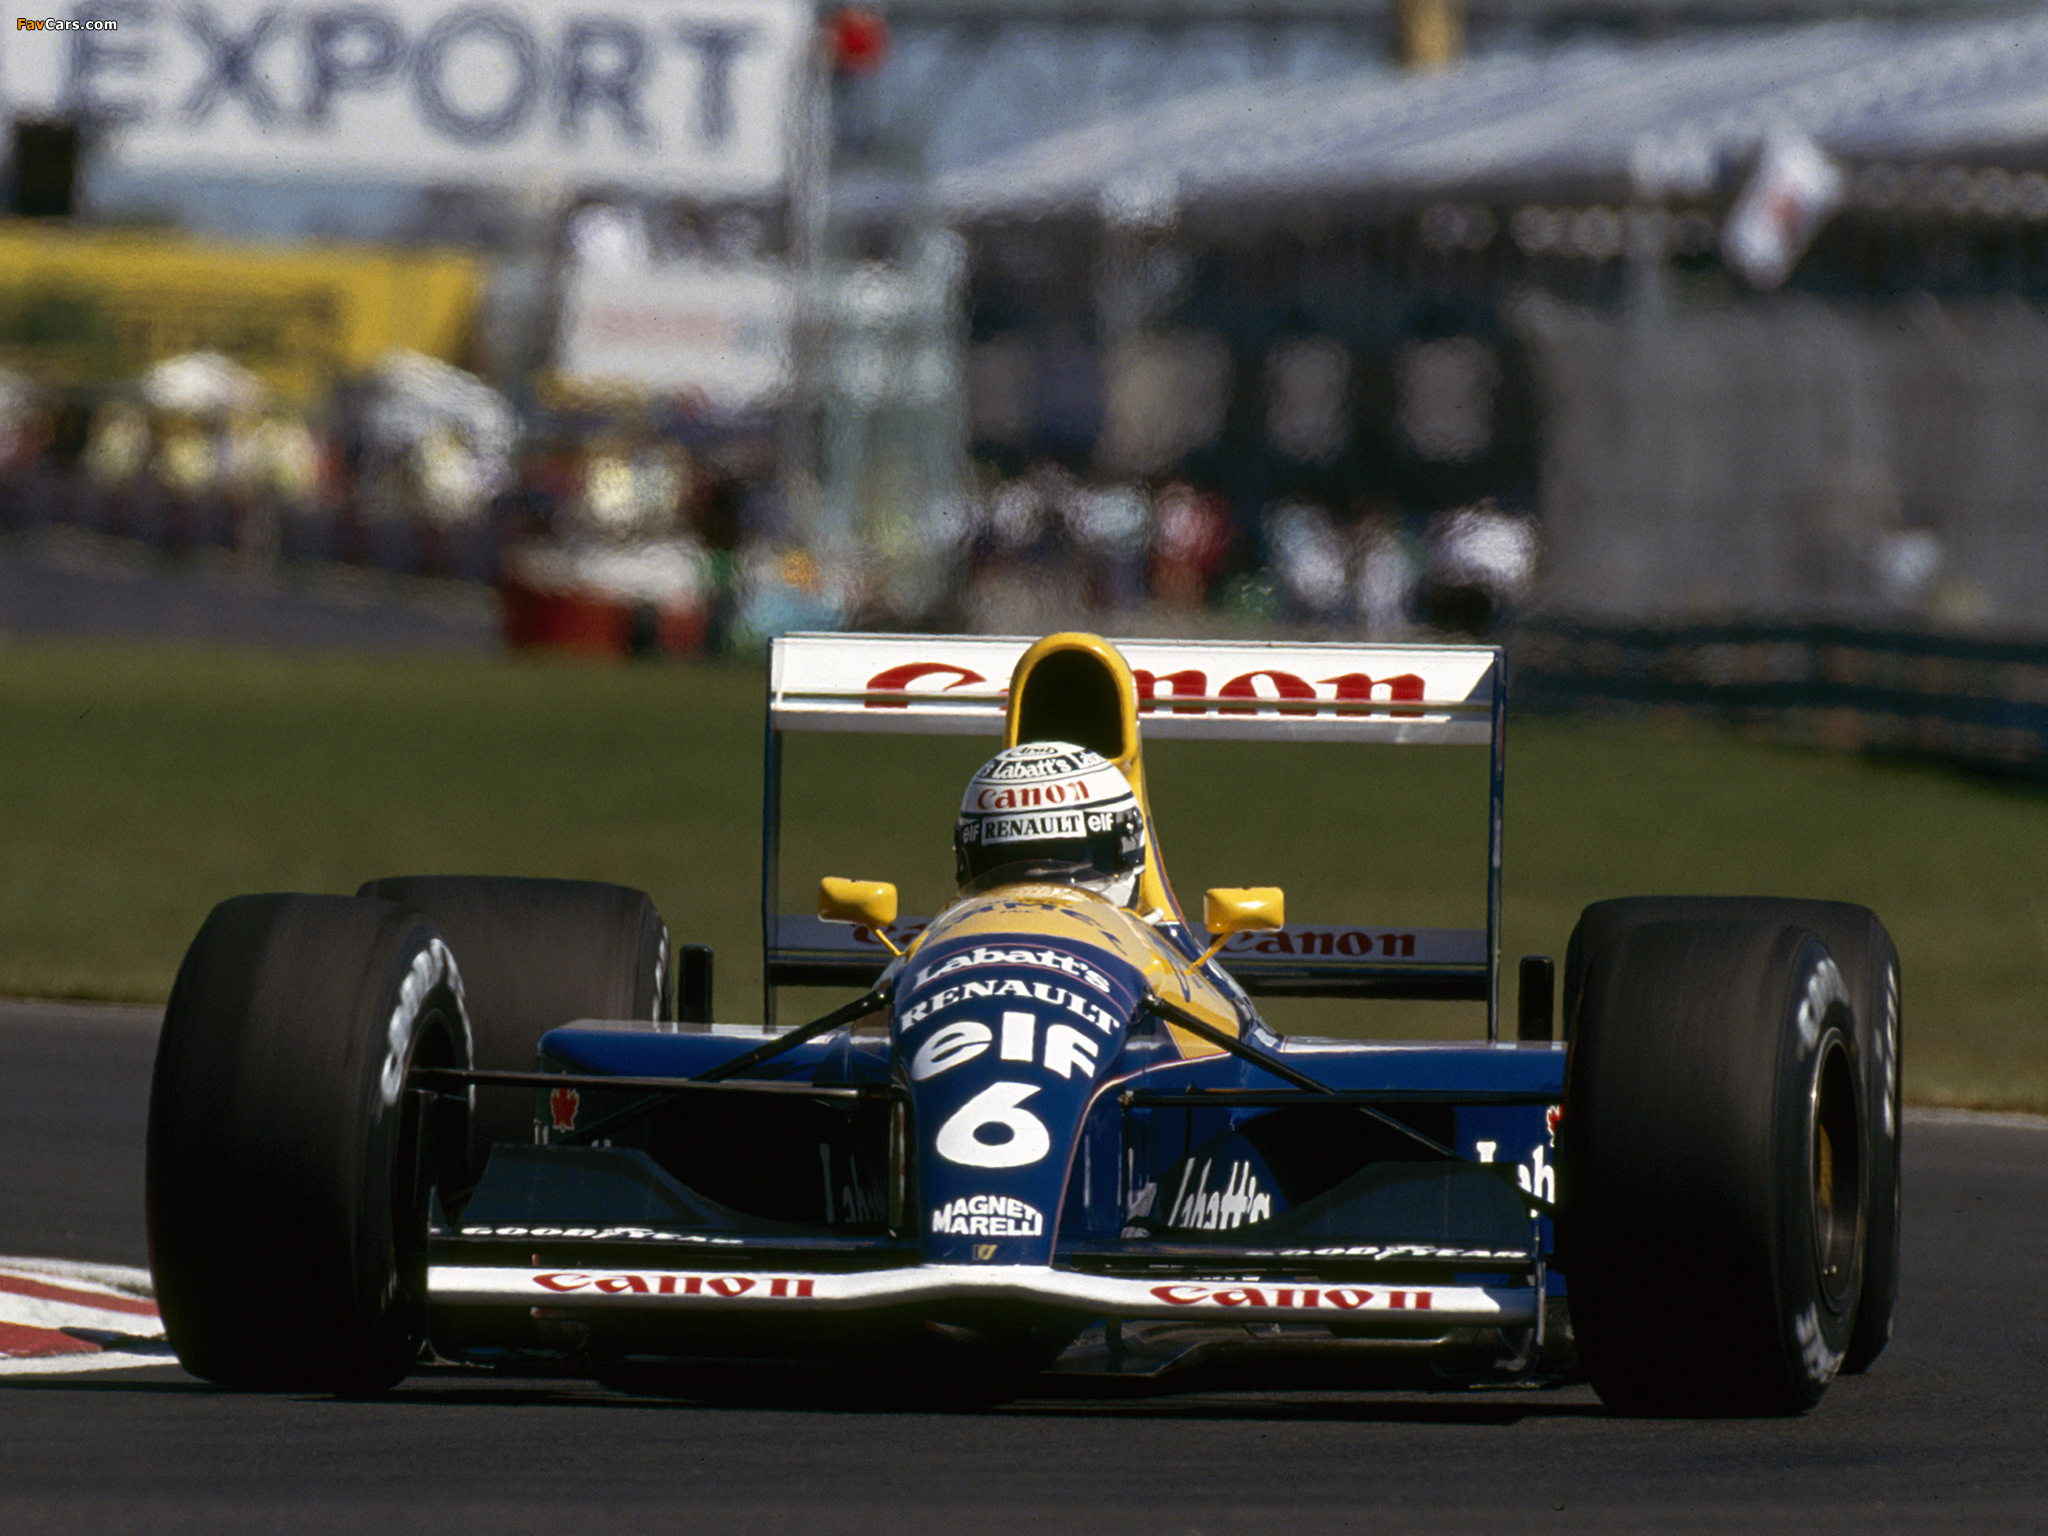 2048x1536 Car Wallpapers Pictures Of Williams Fw14 1991 2048x1536